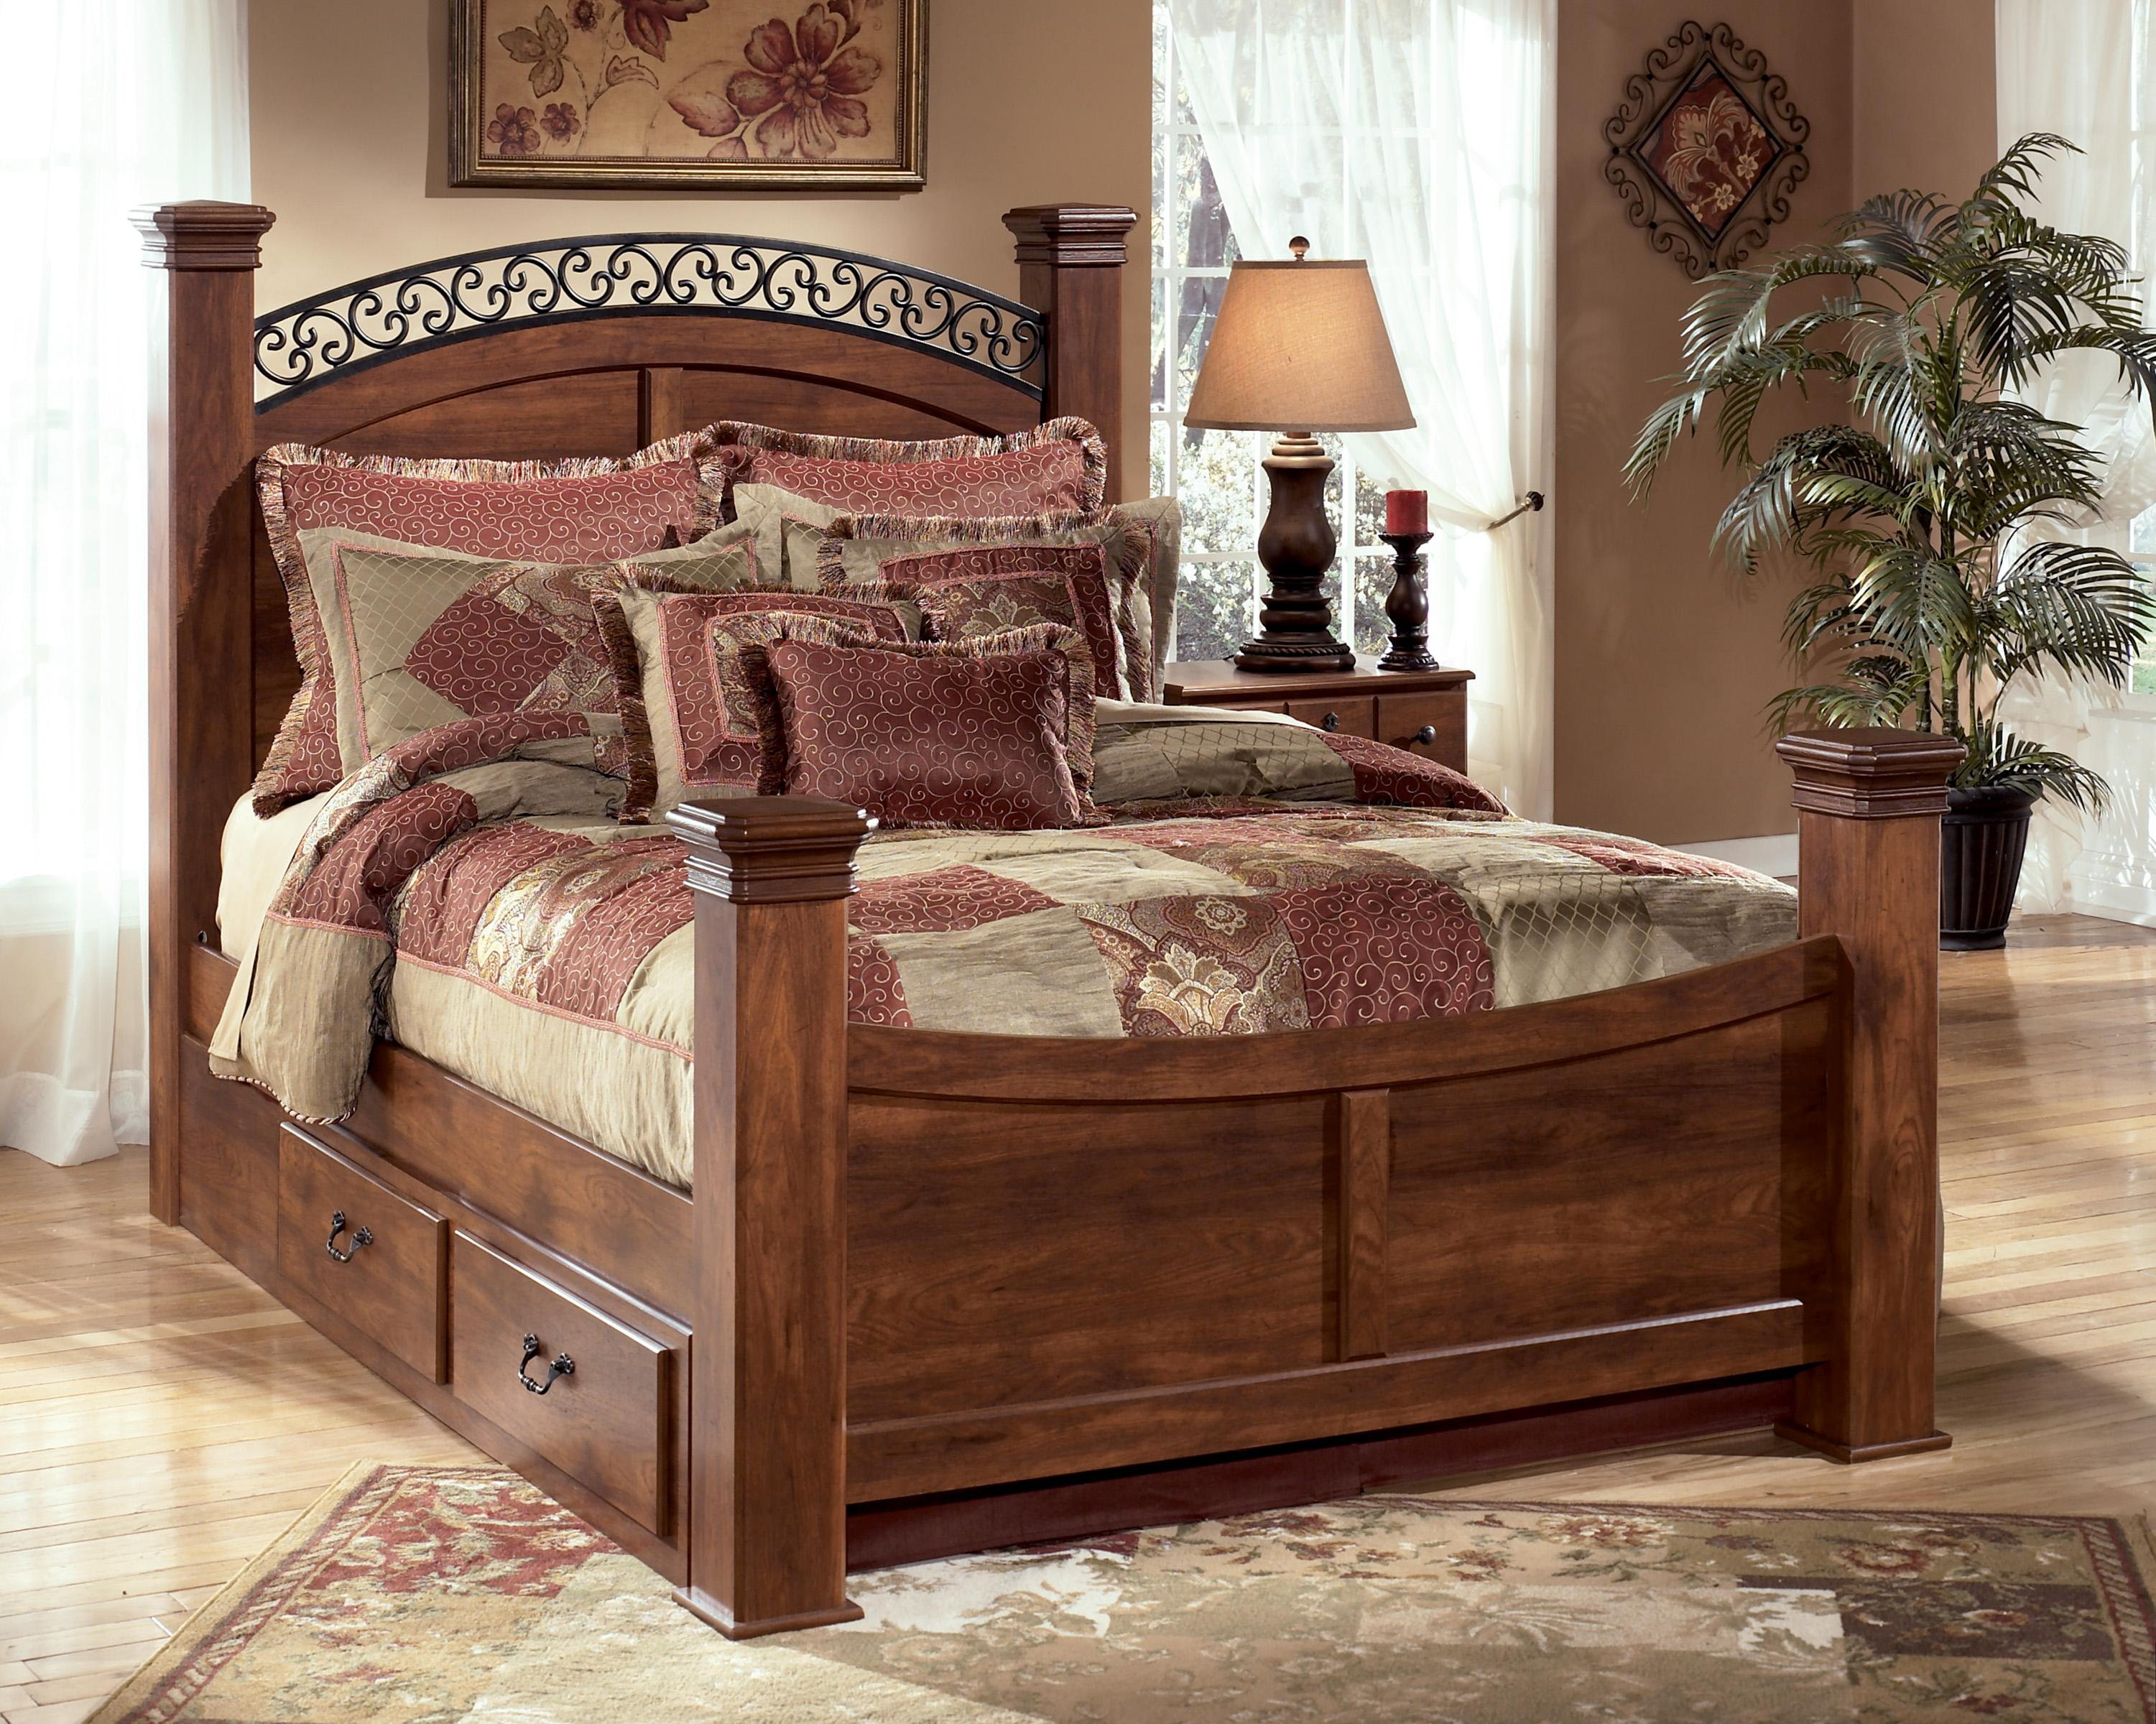 Signature Design by Ashley Timberline Queen Poster Bed with Storage - Item Number: B258-77+71N+64N+98N+60